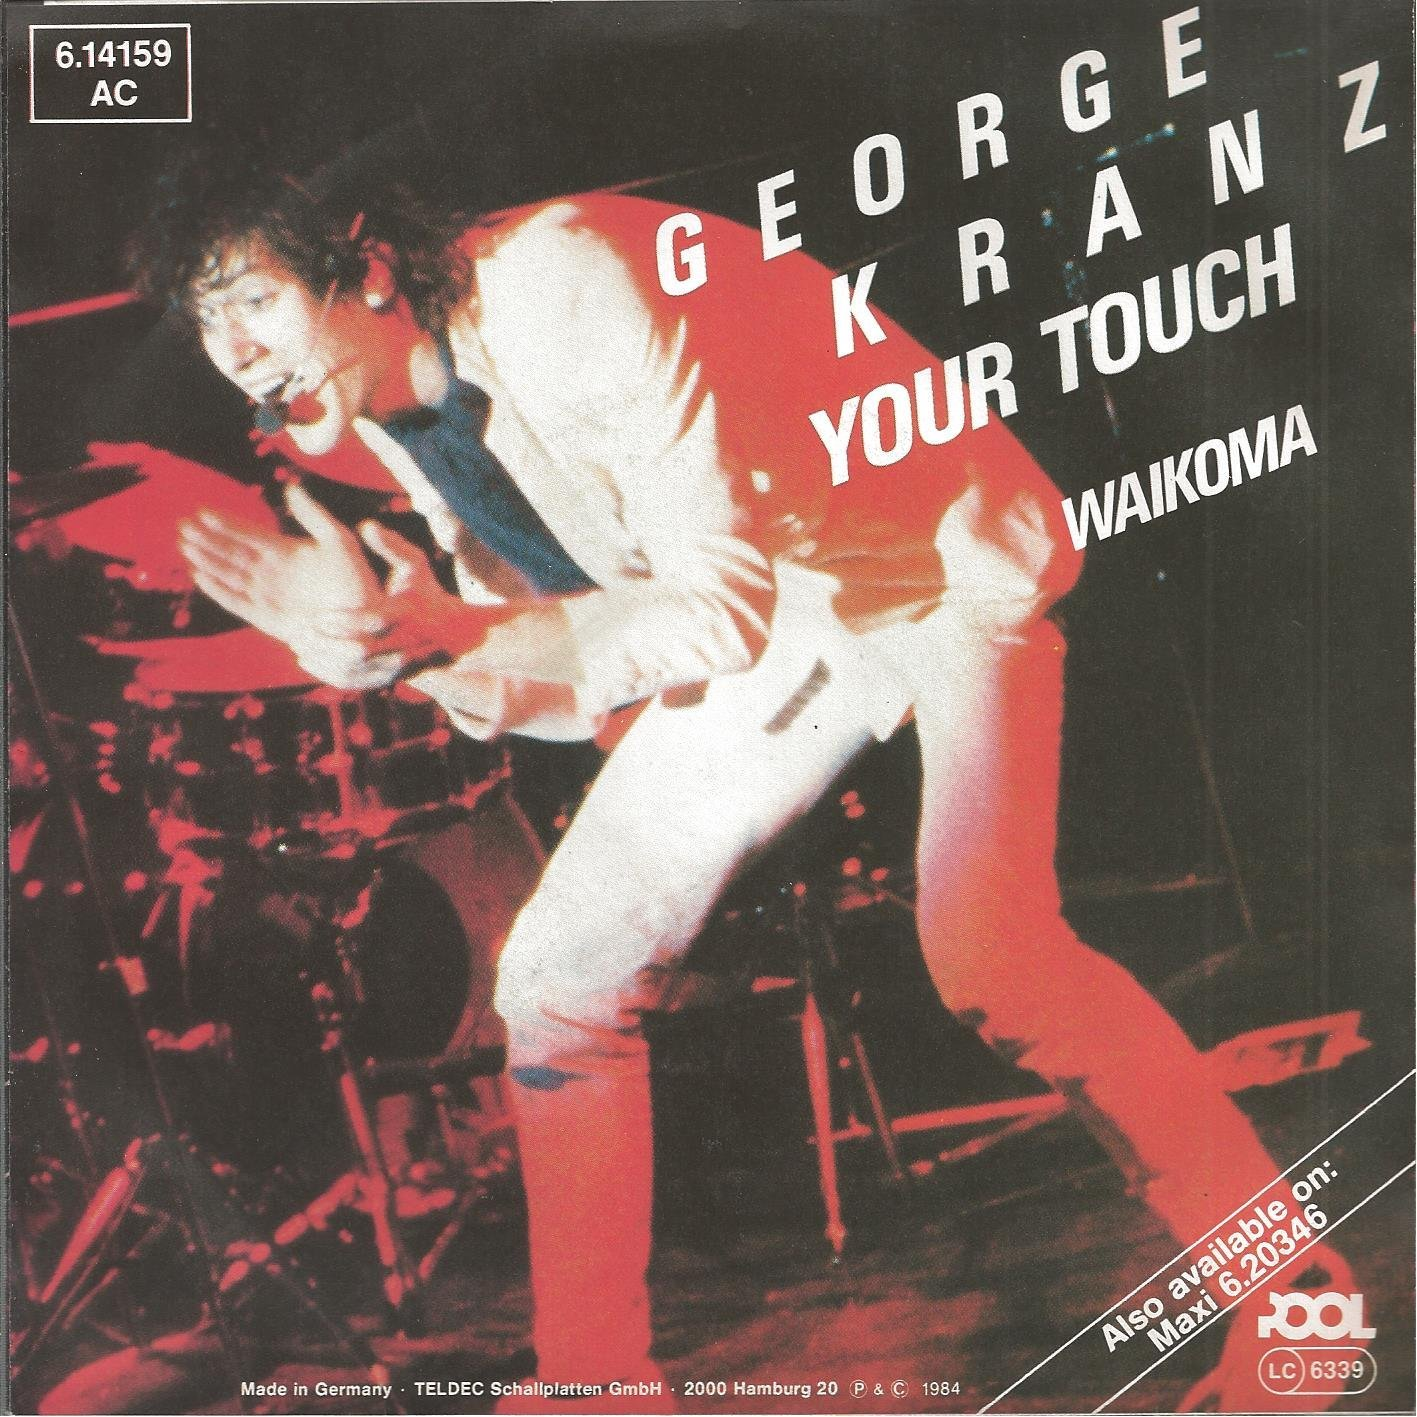 georgekranz your touch